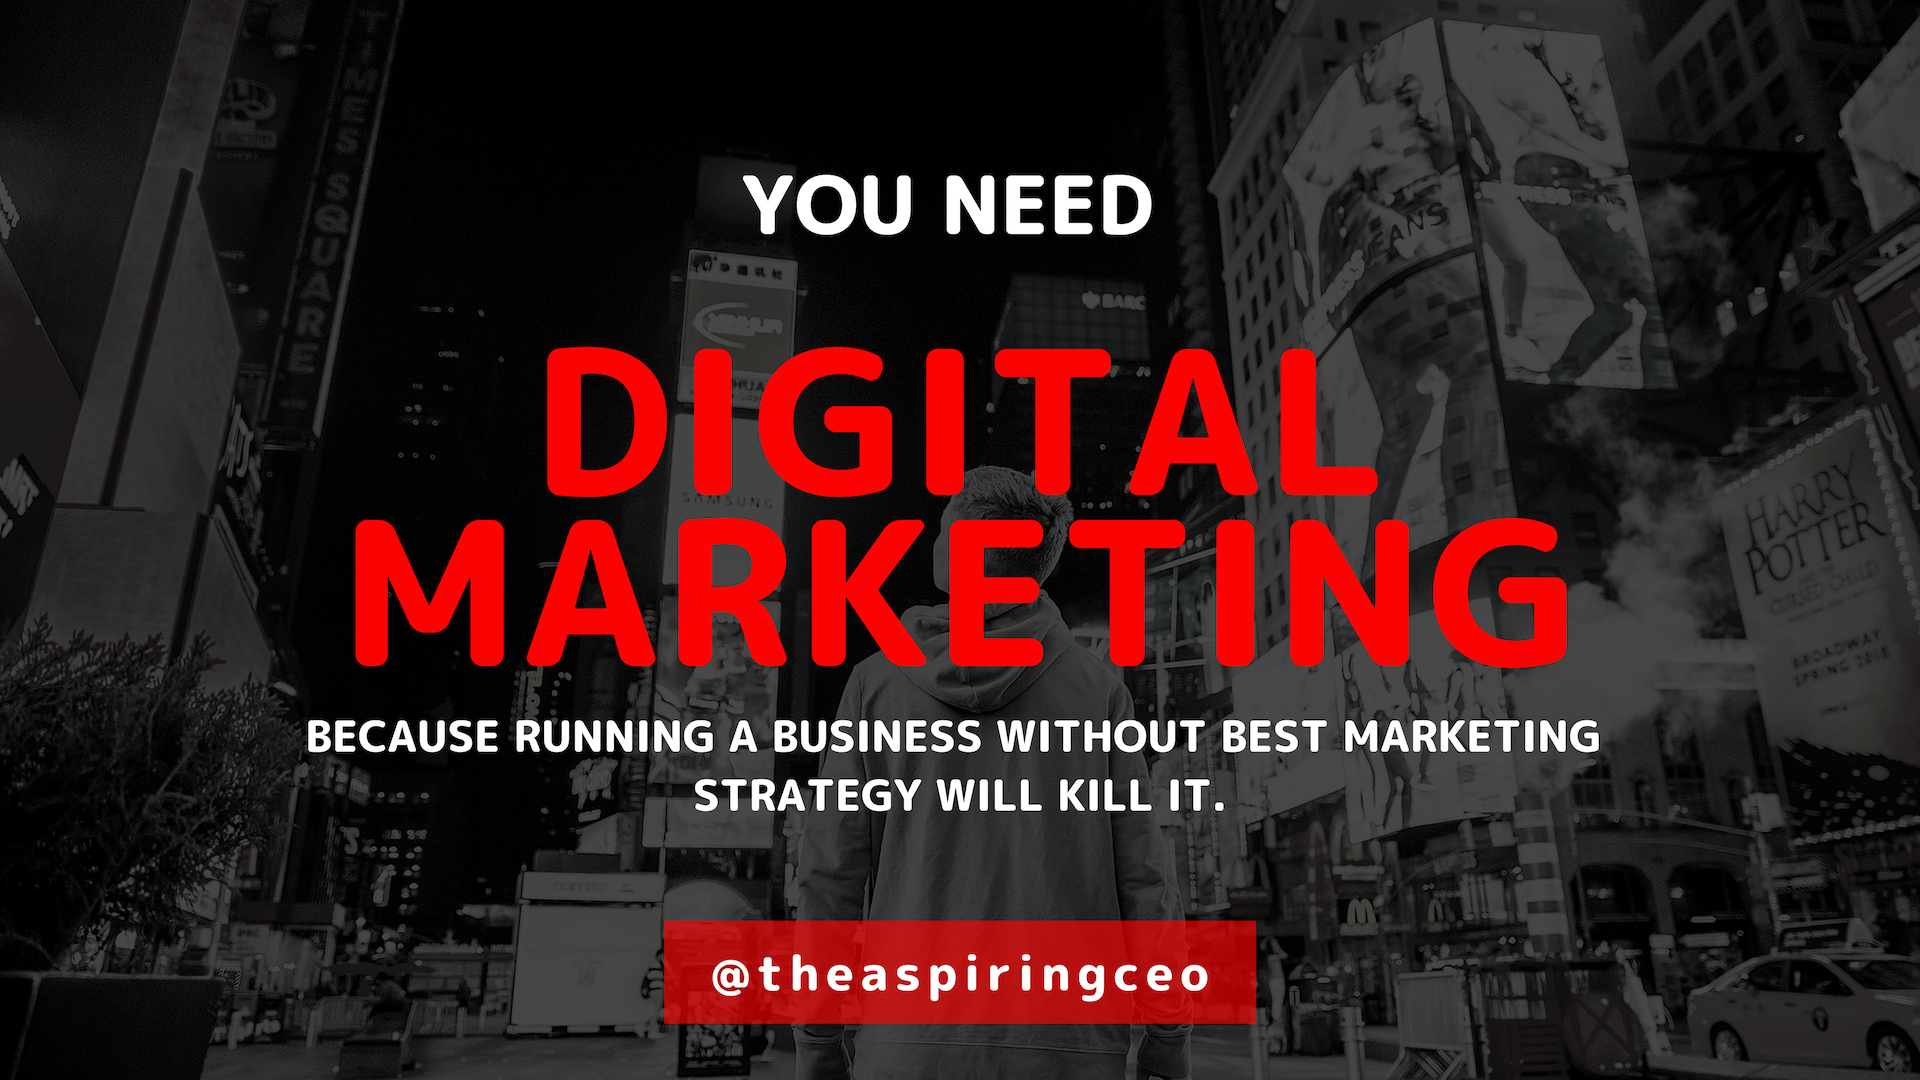 RUNNING A BUSINESS WITHOUT MARKETING WILL KILL IT